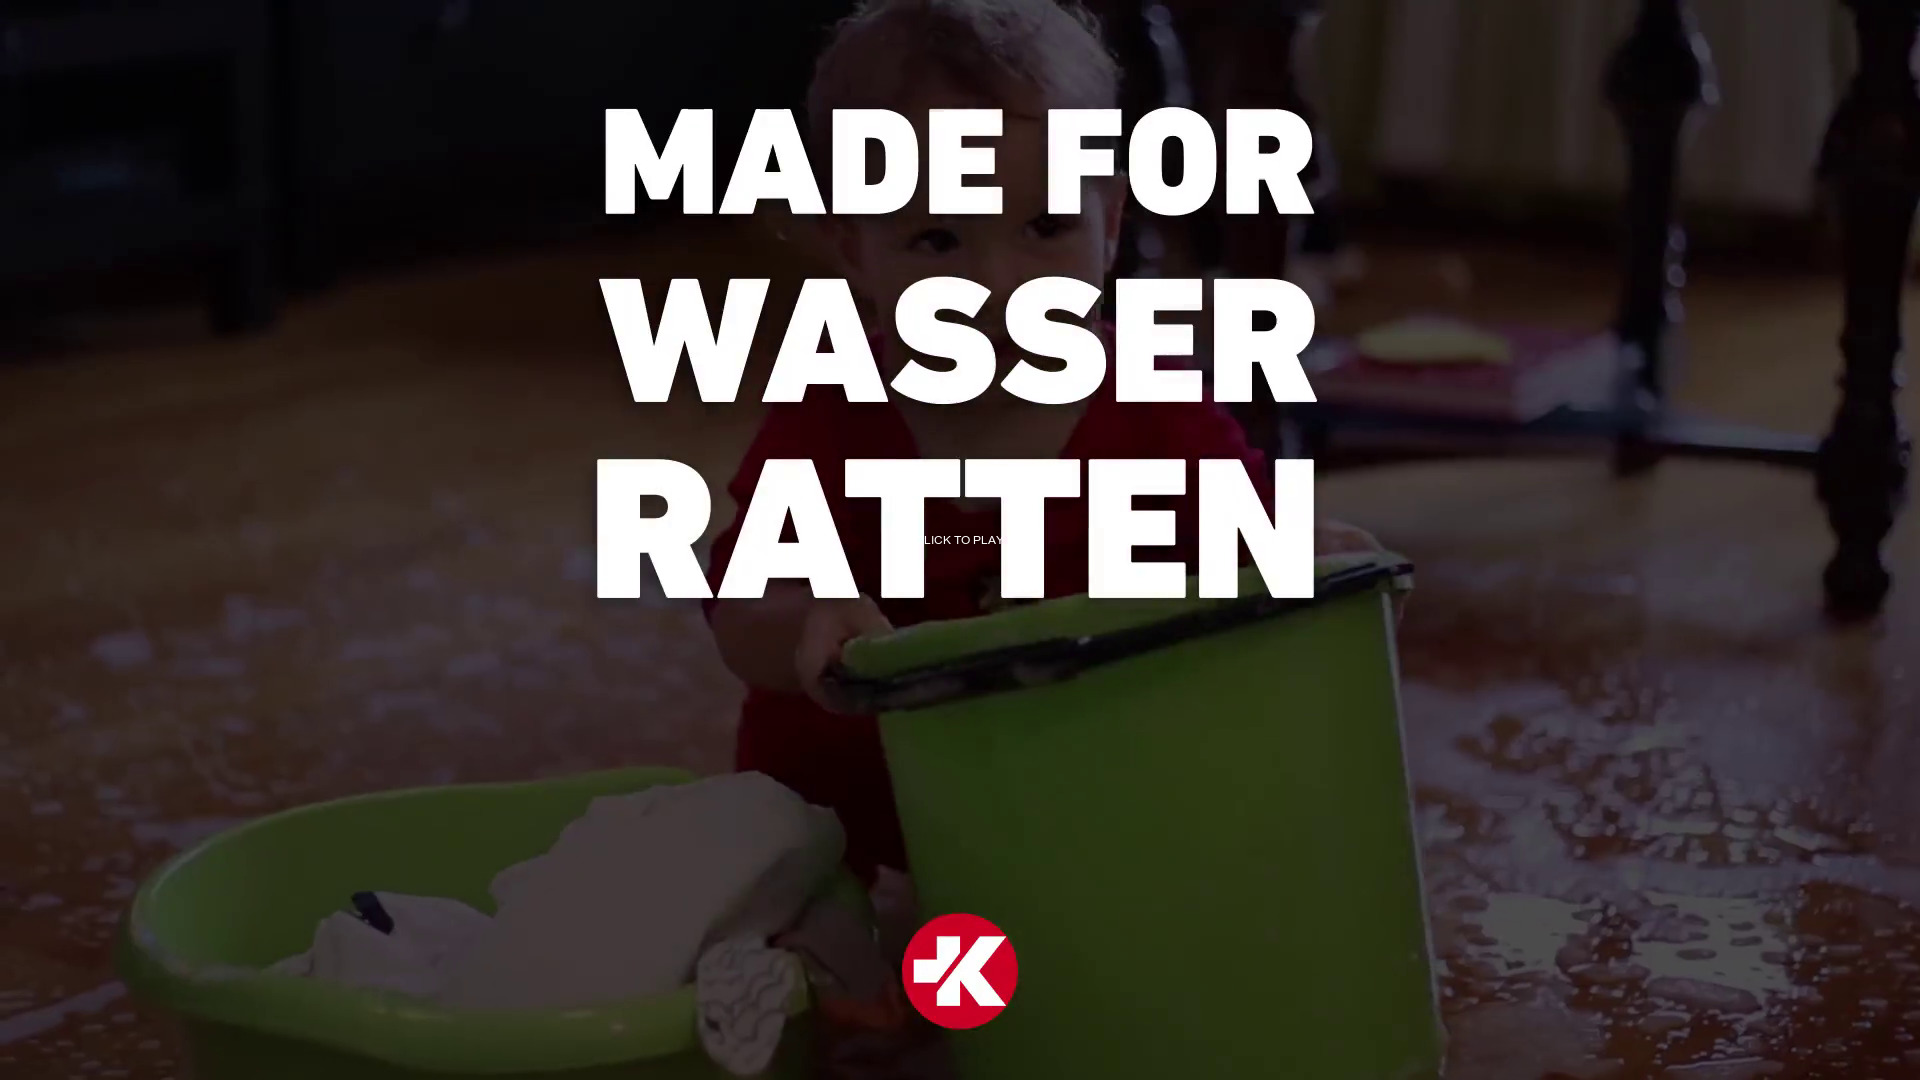 Made for Wasser Ratten